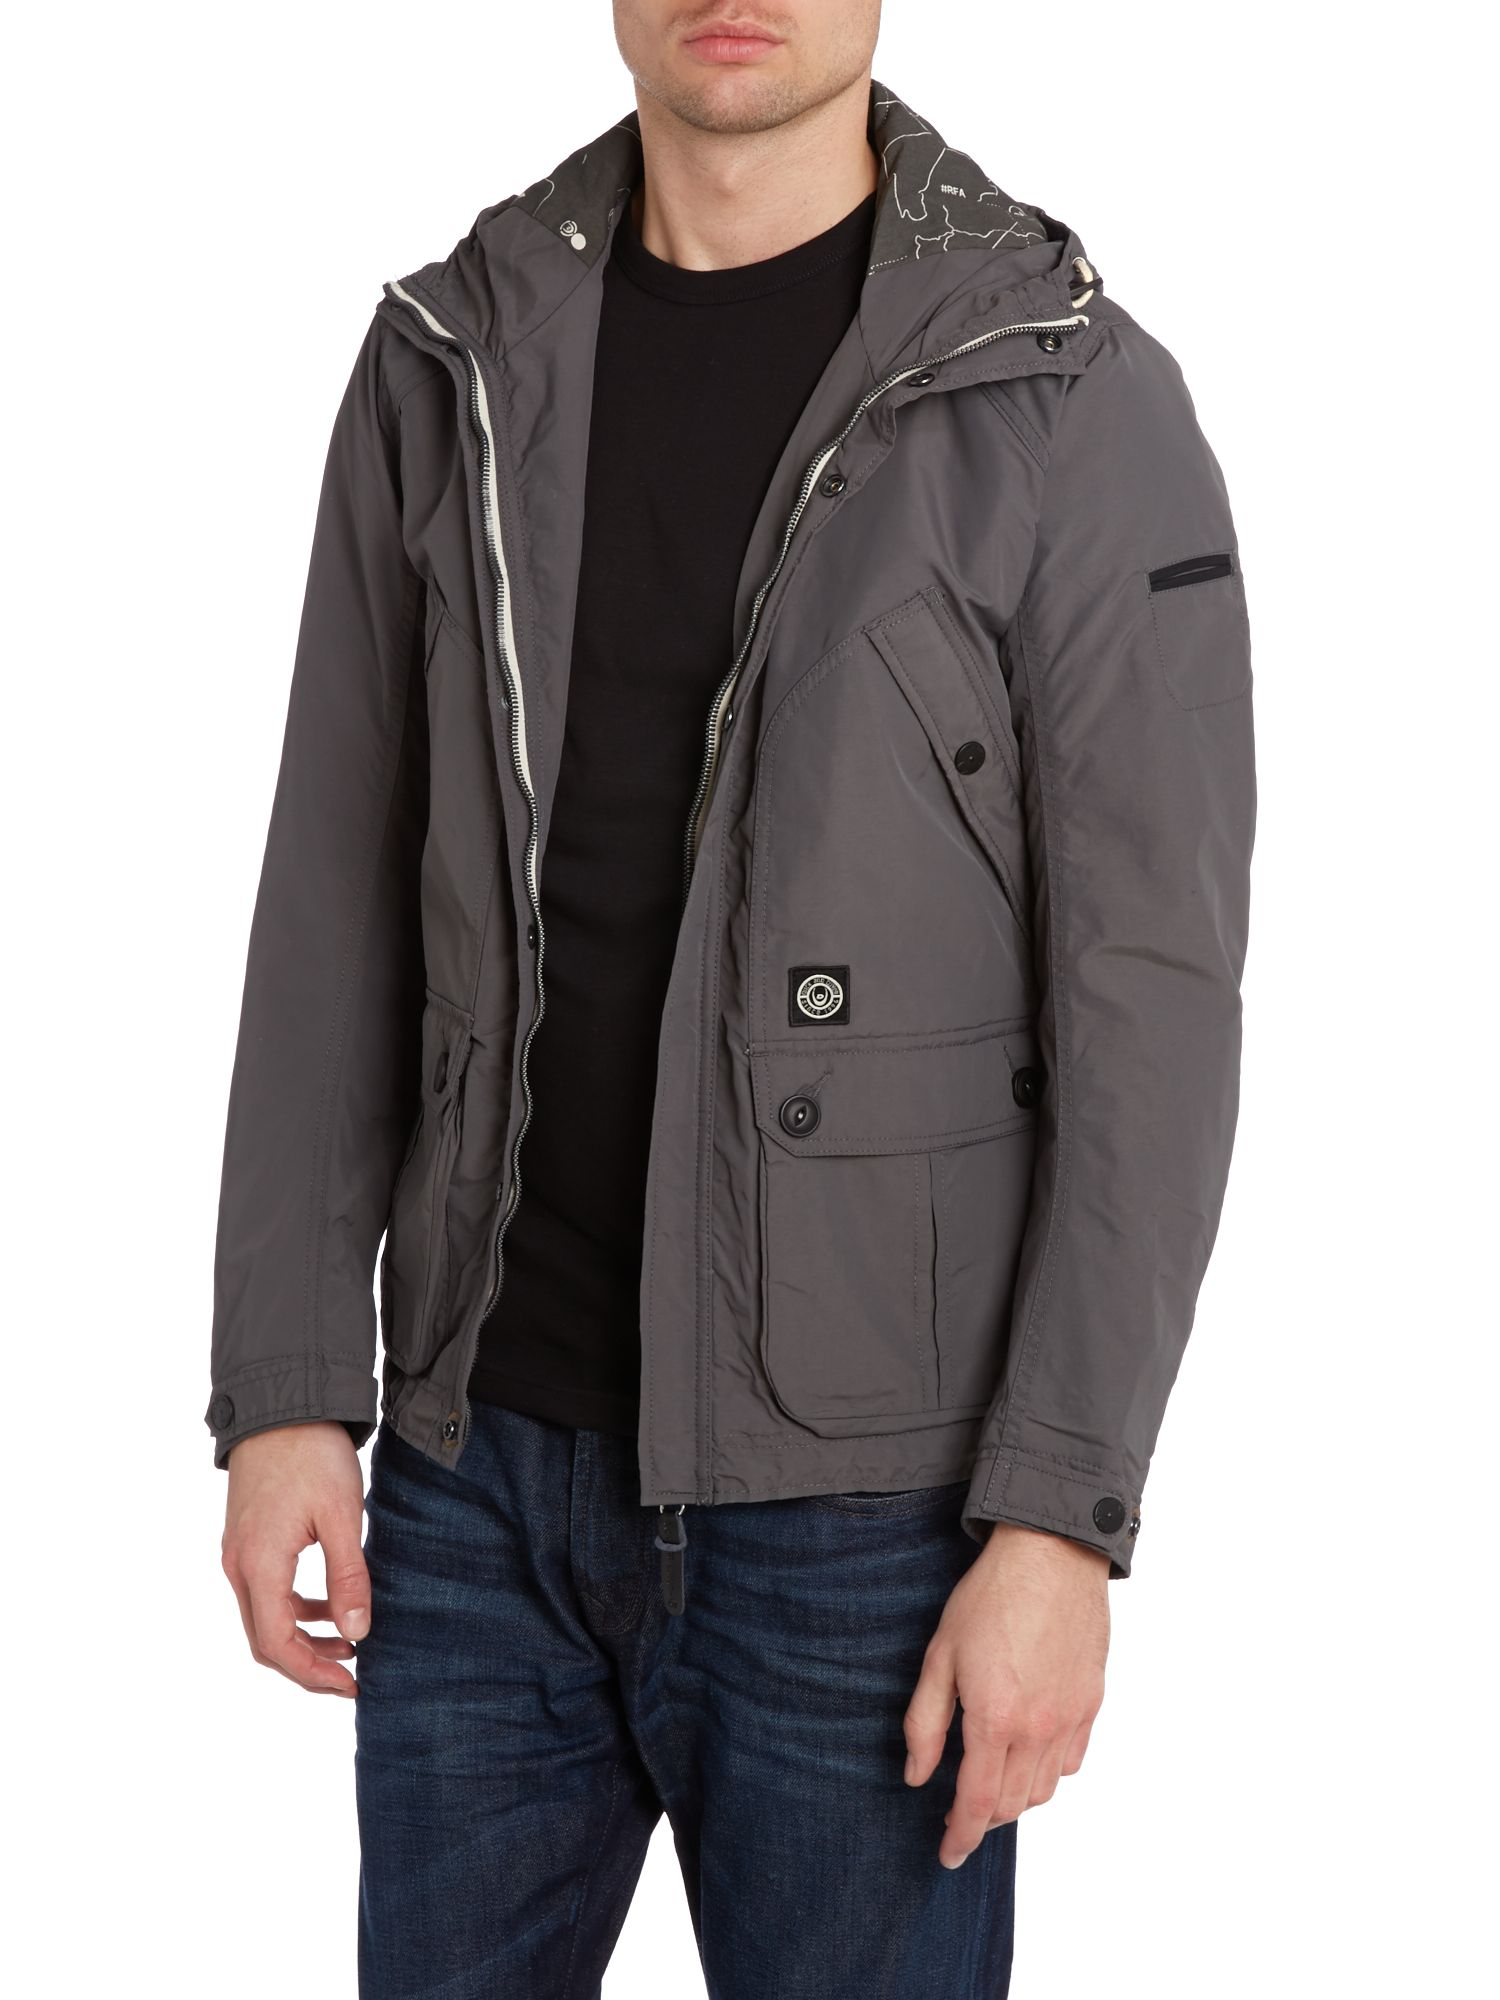 Owen-v3 hooded shower proof jacket